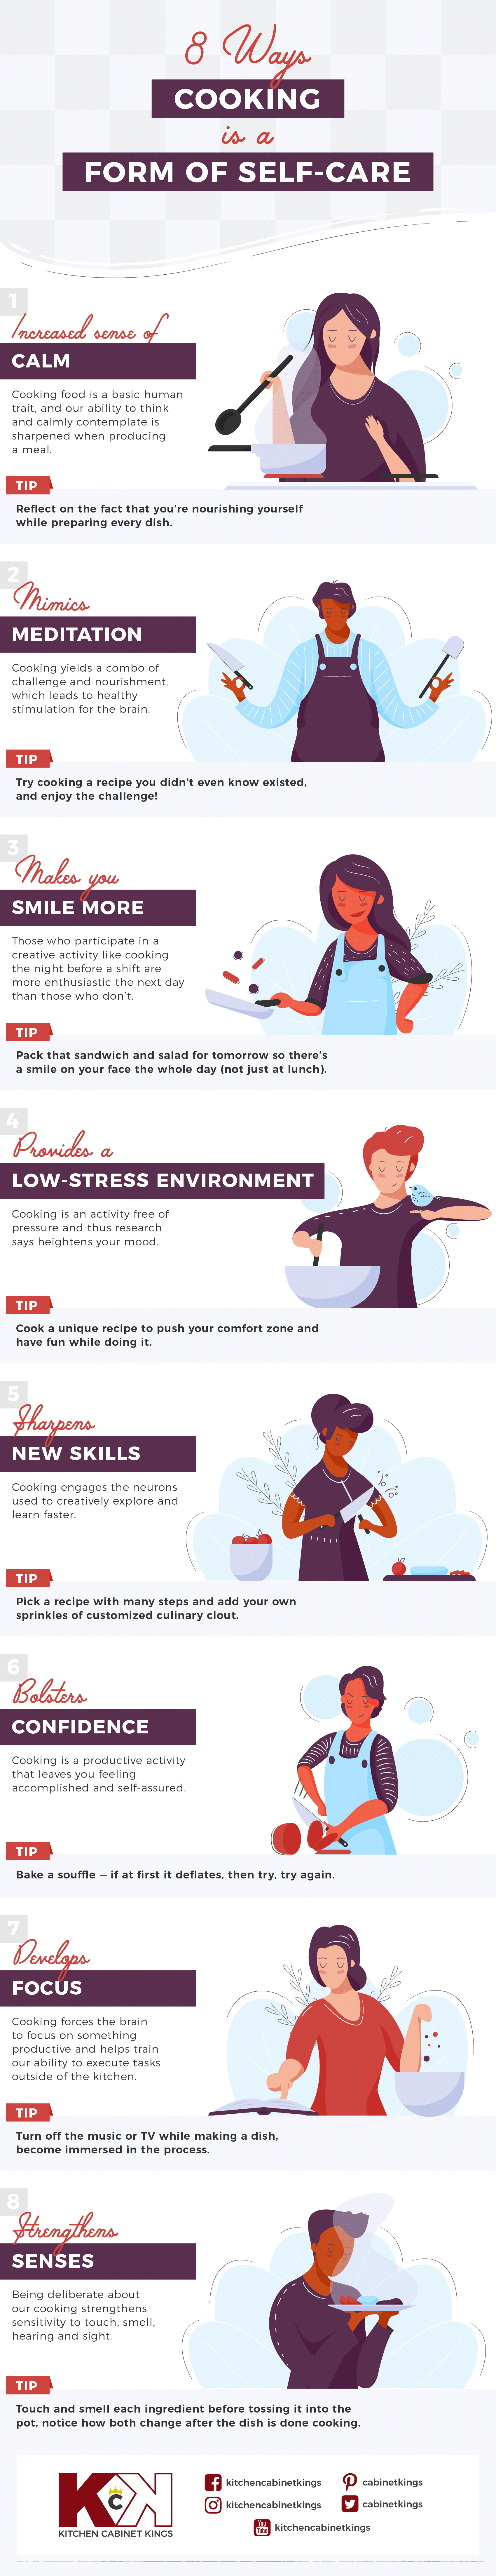 KCK cooking as meditiation infographic 1